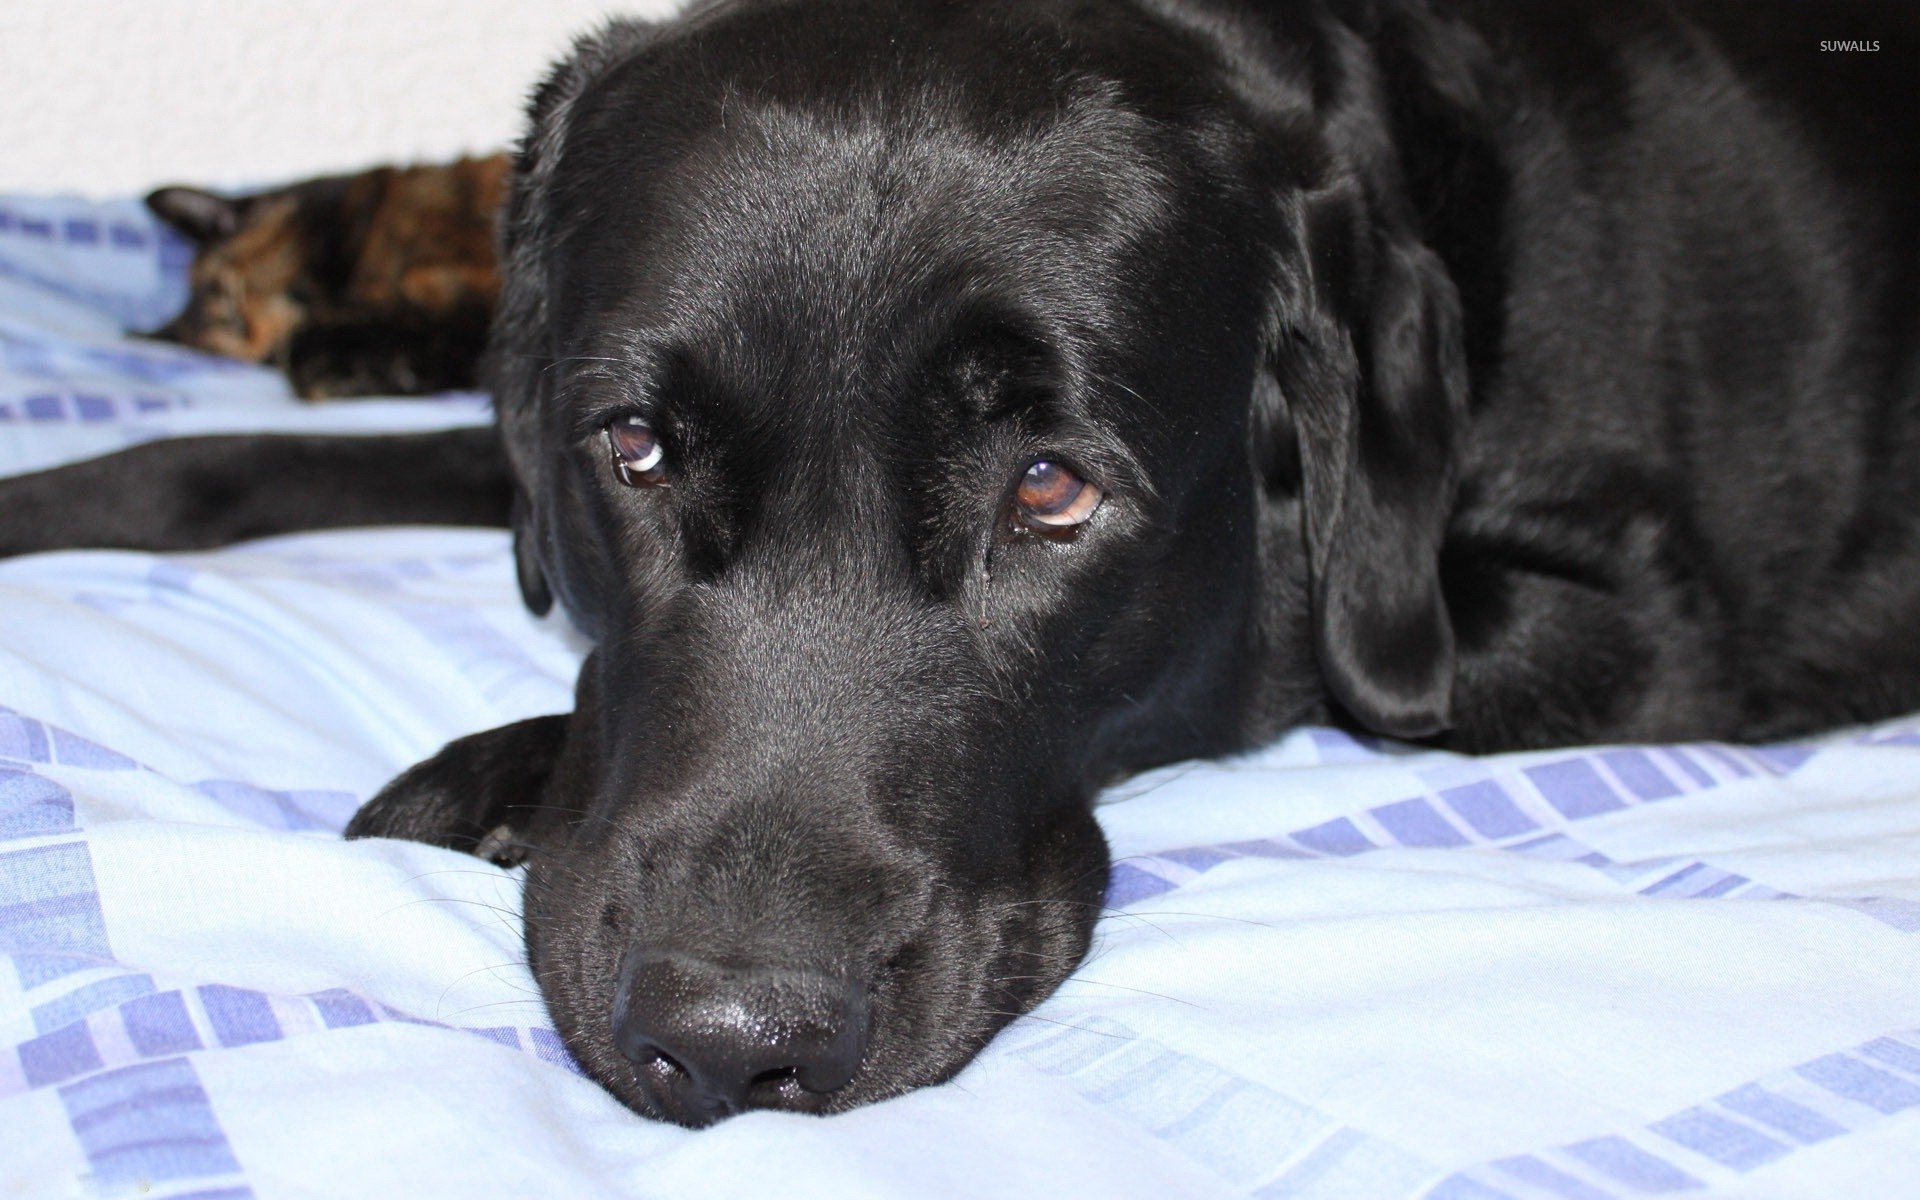 sad black dog resting on the bed wallpaper - animal wallpapers